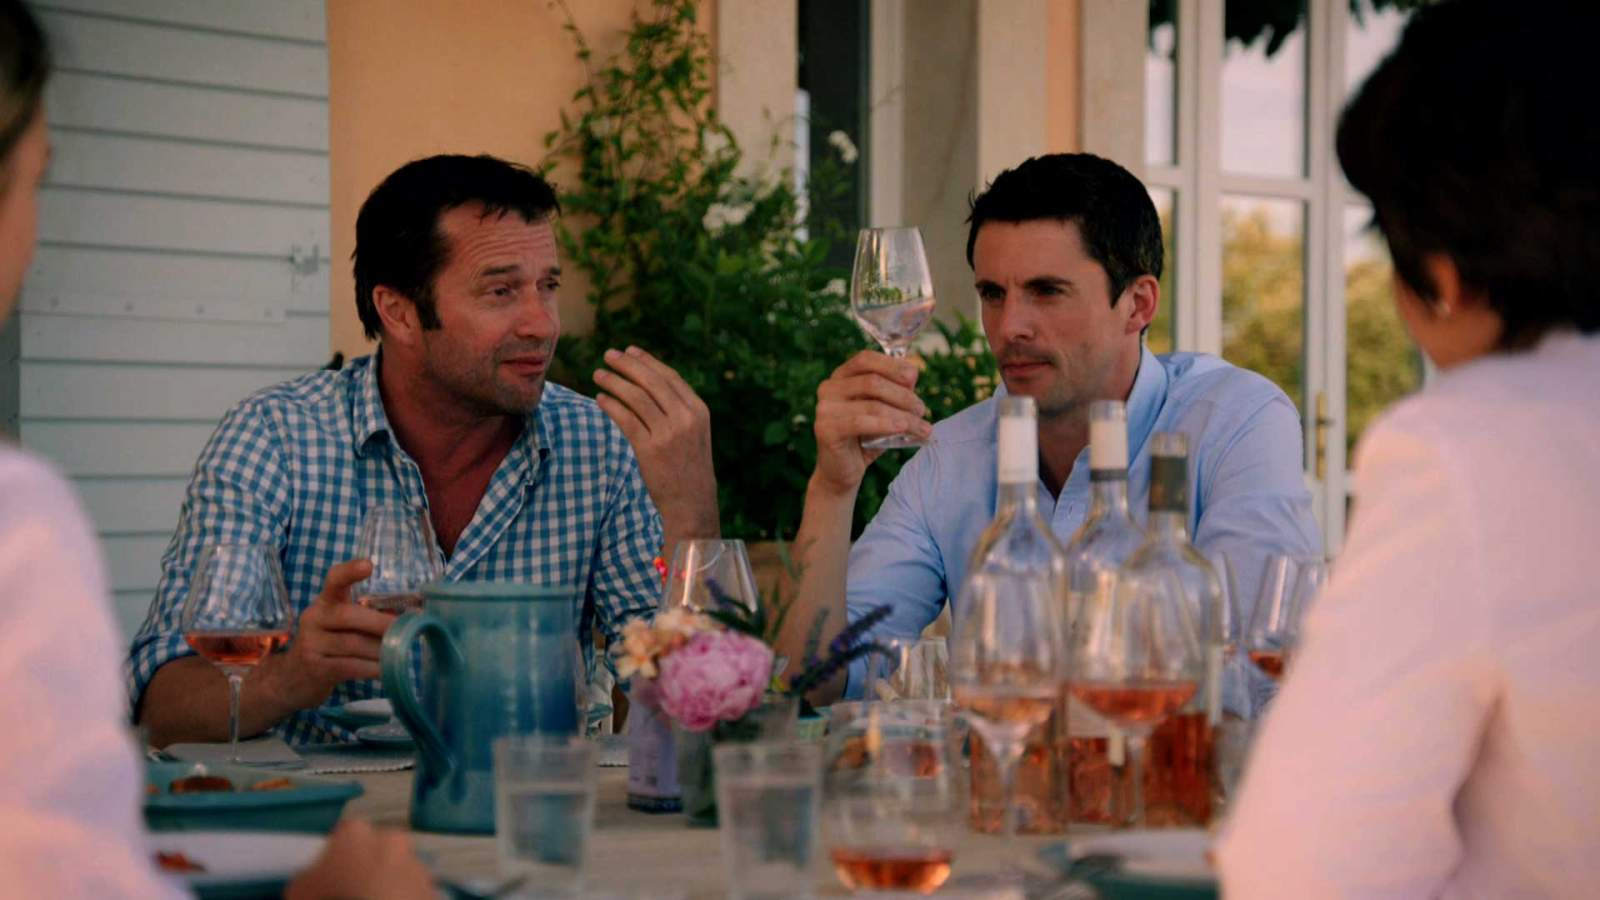 James Purefoy Joins Matthew Goode In Season Two Of The Wine Show Premiering On Ovation Tv November 15